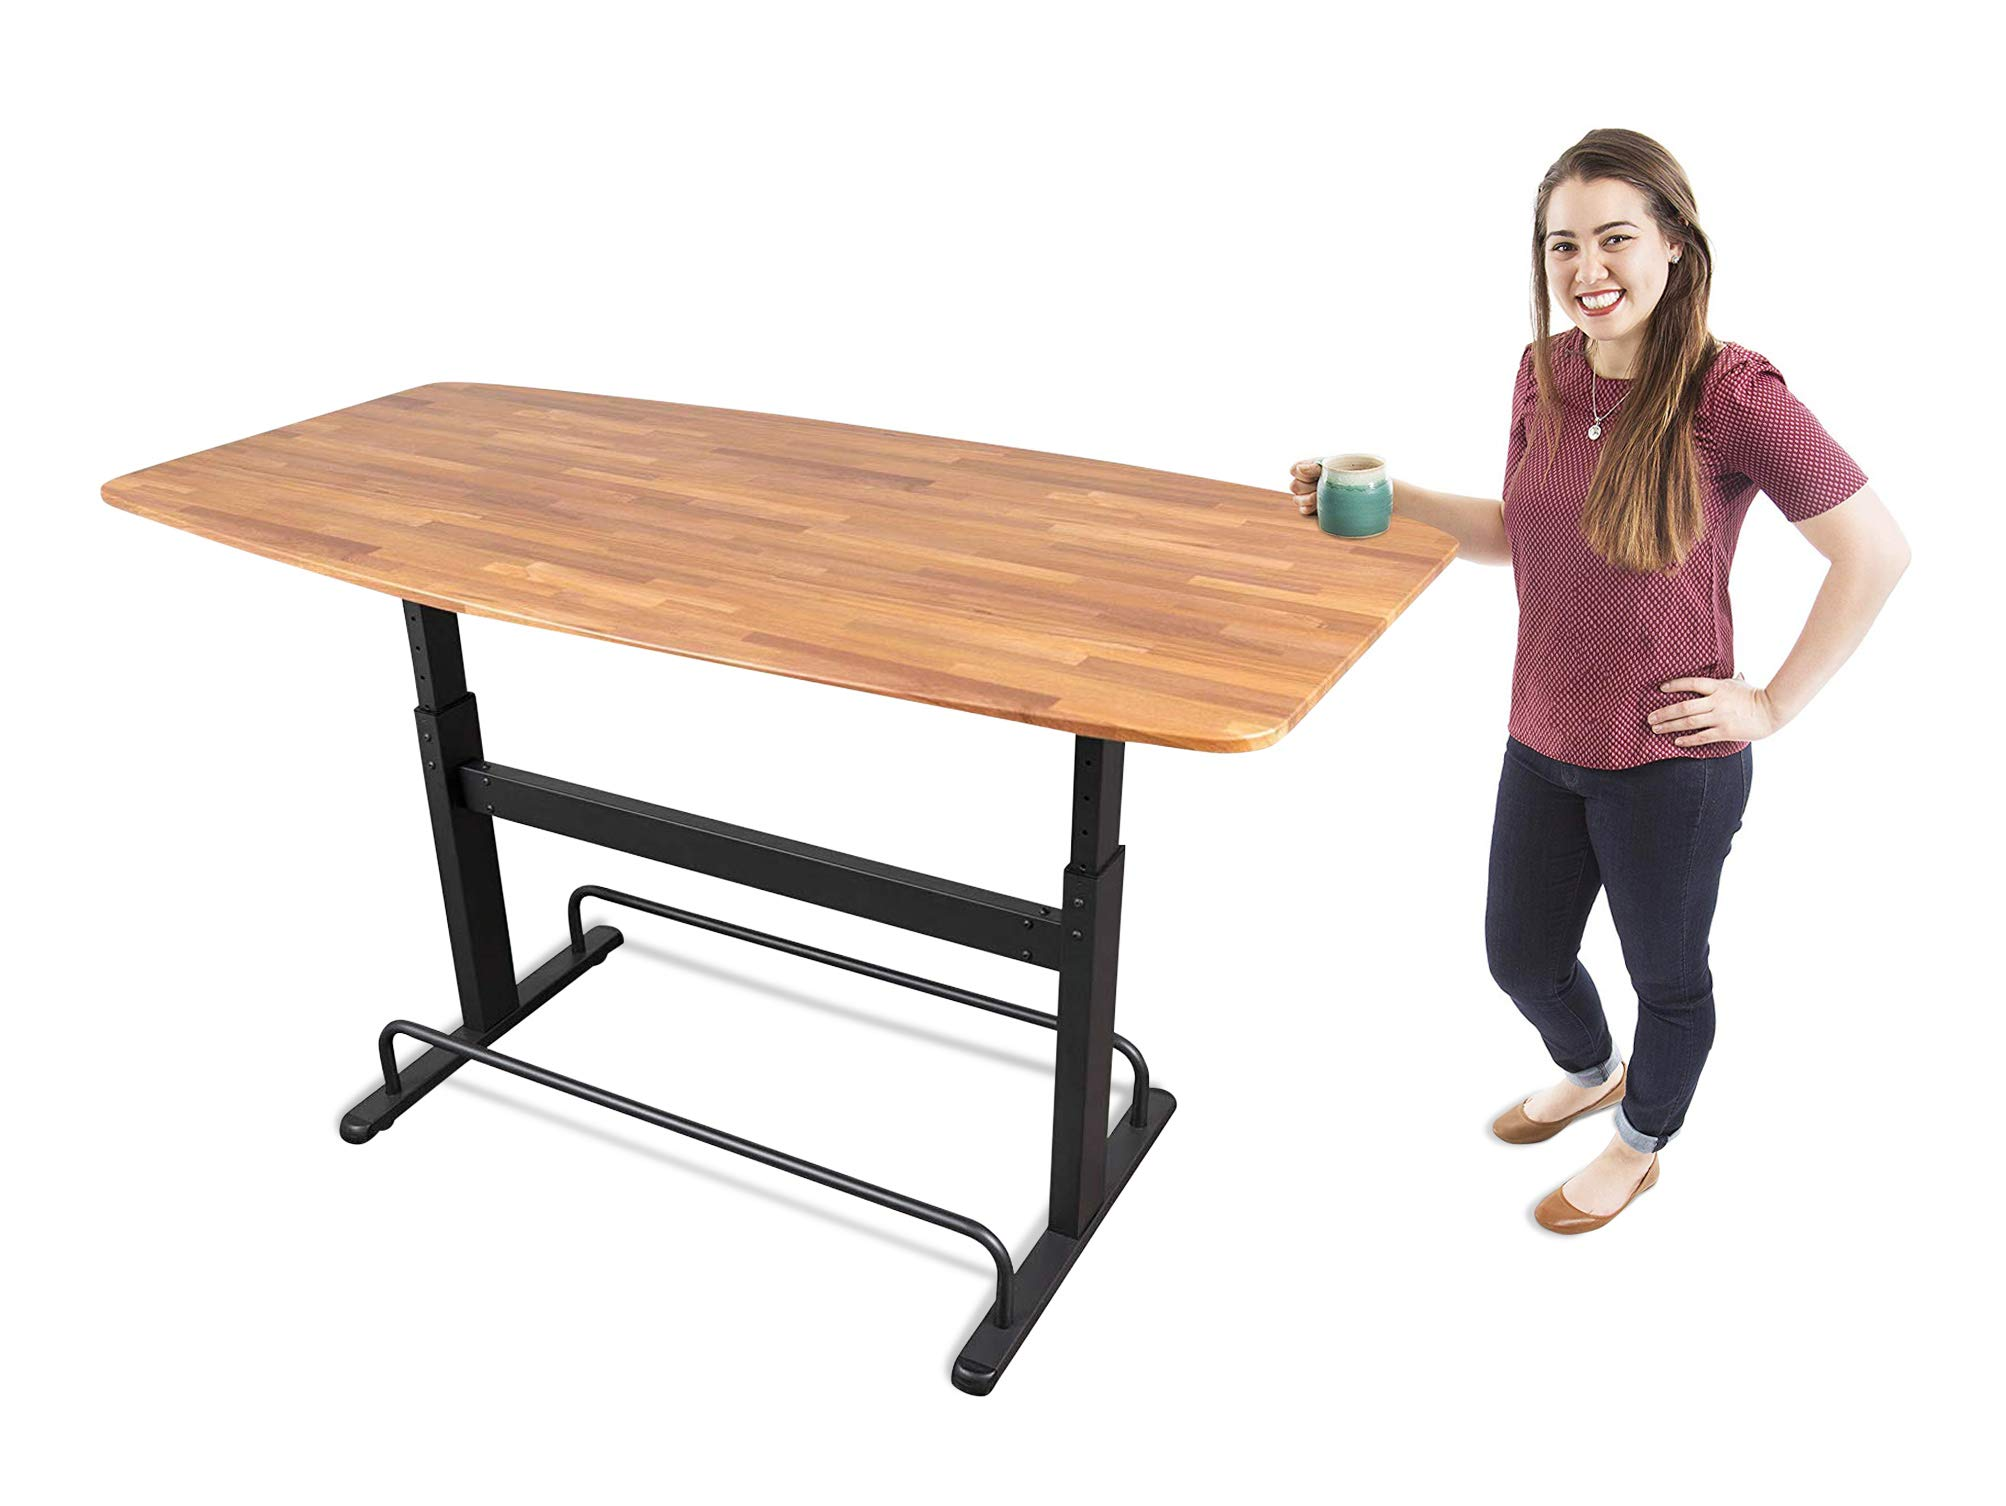 Stand Steady 72'' Standing Height Conference Table w/Adjustable Legs | Sit or Stand Up Collaboration Desk | Perfect as a Boardroom or Meeting Room Table, Standing Desk and More! (Butcher Block Top)